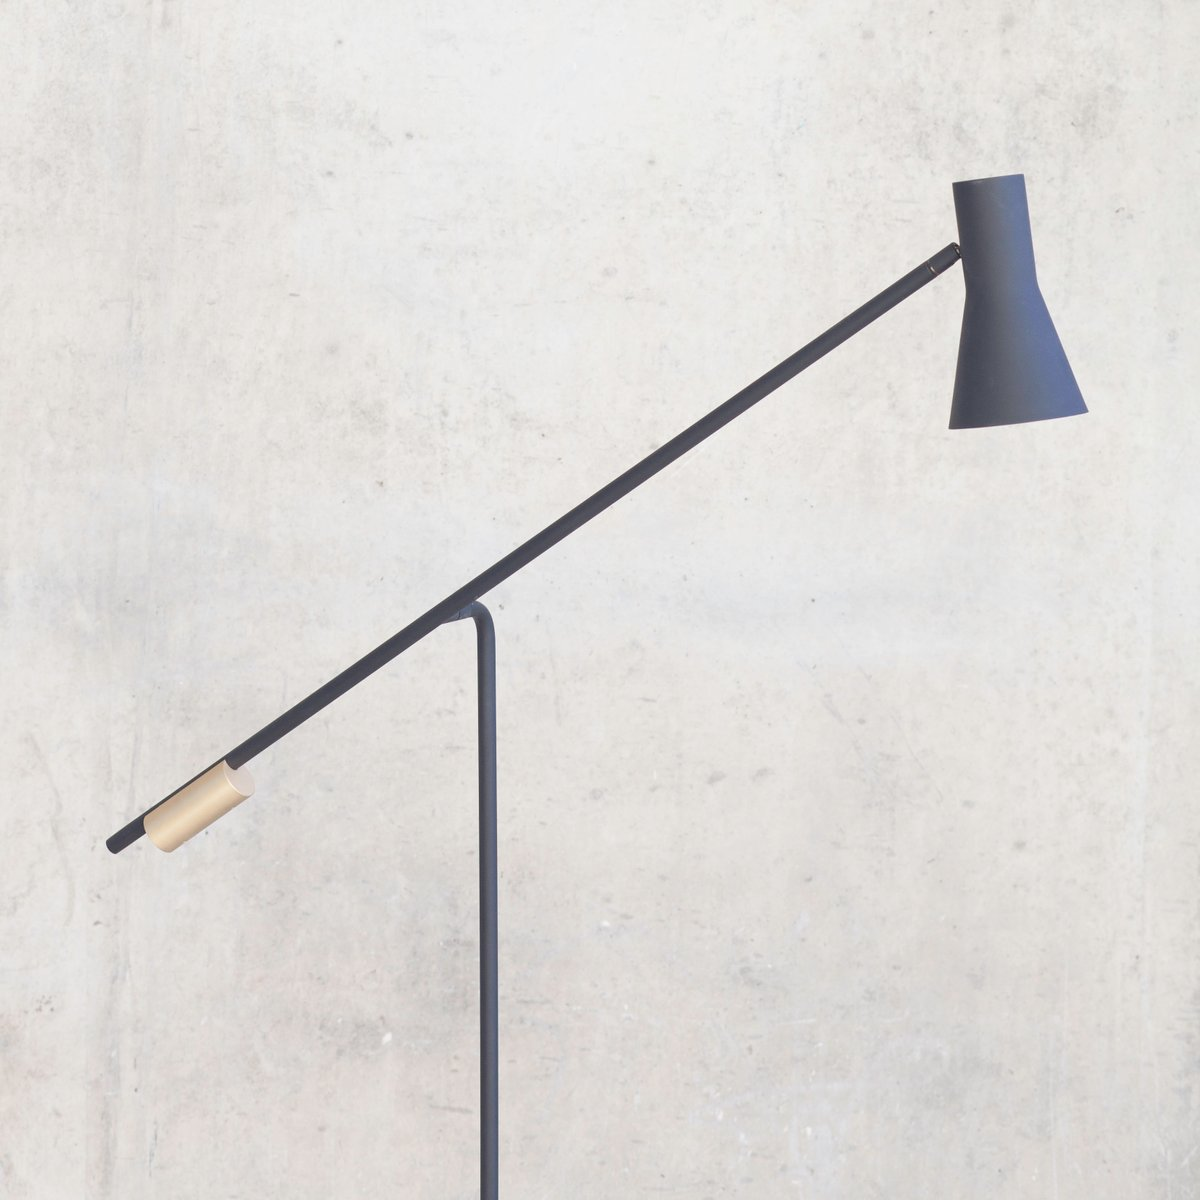 lutz floor lamp by pierre dubourg for versant edition for sale at pamono. Black Bedroom Furniture Sets. Home Design Ideas